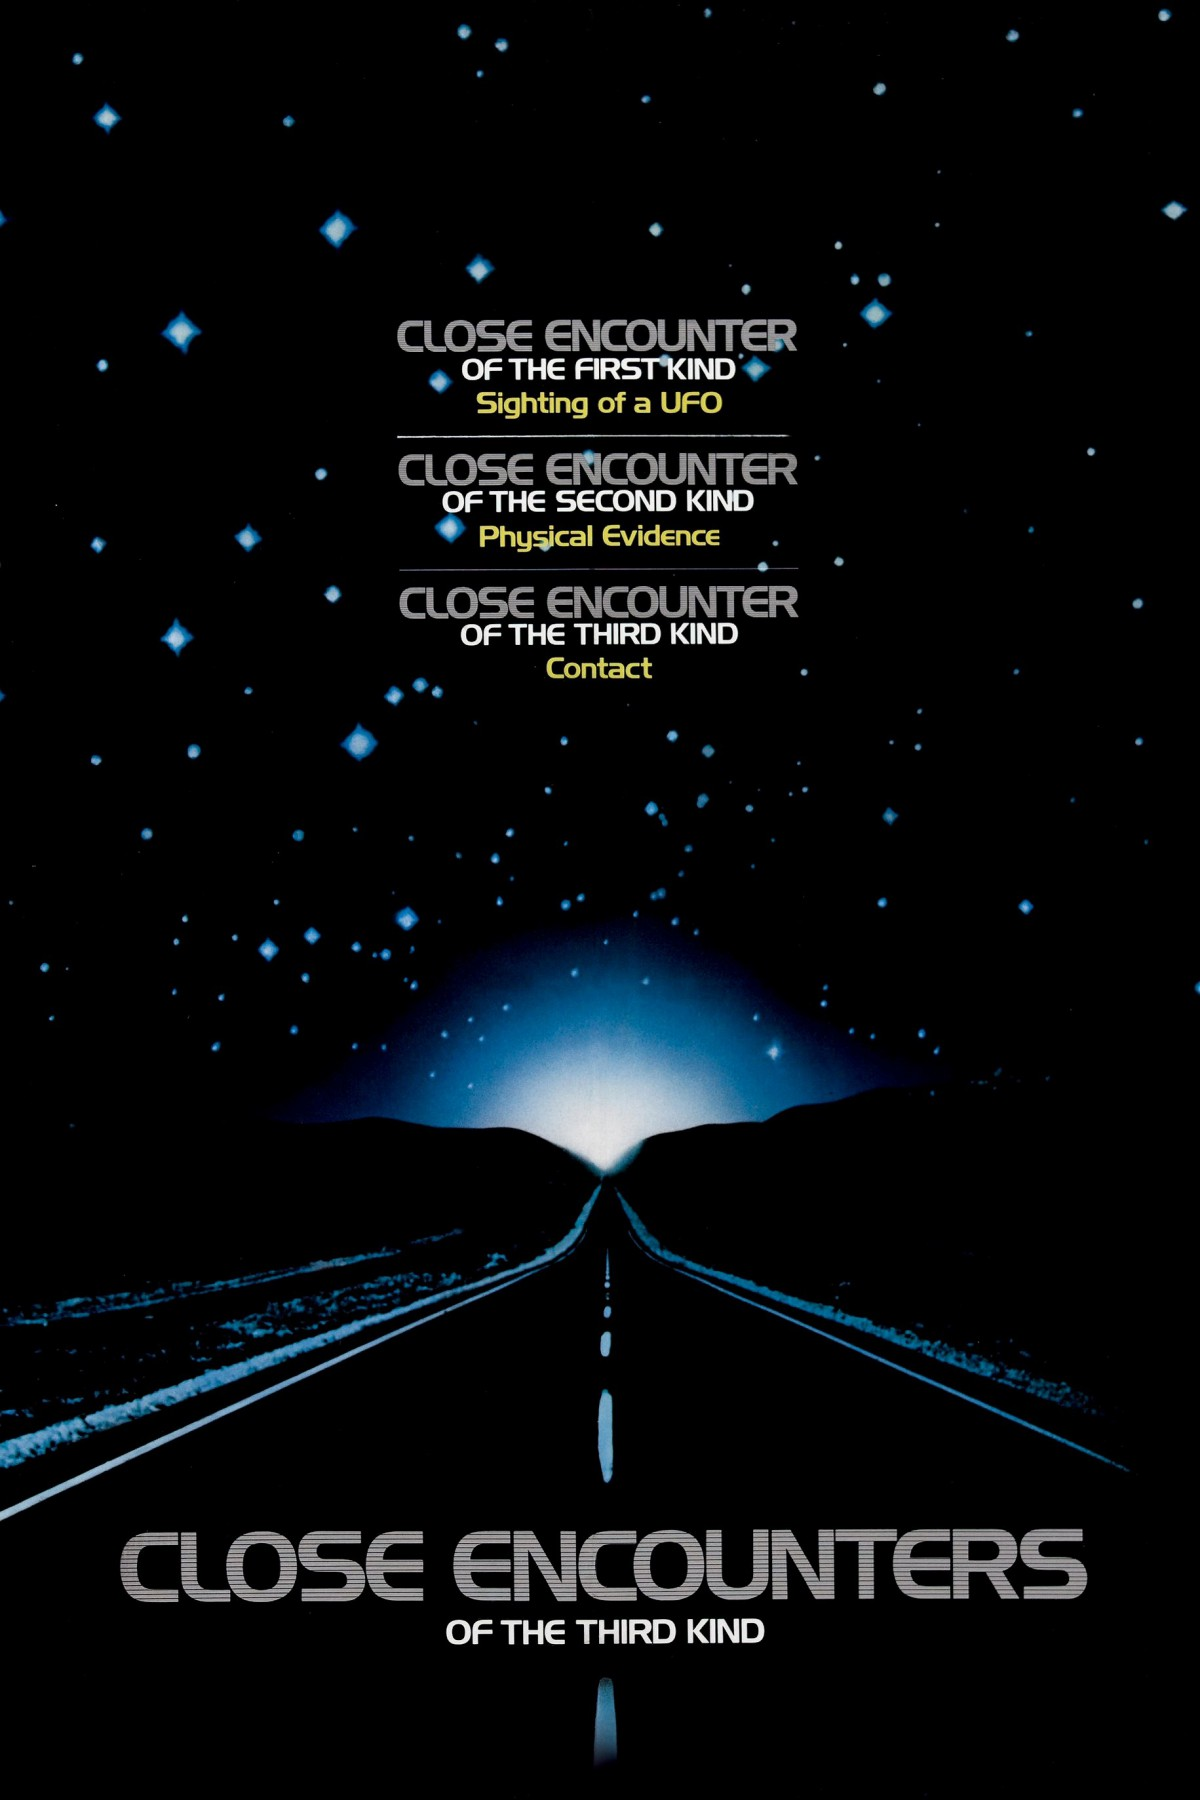 8. Close Encounters of the Third Kind (1977)